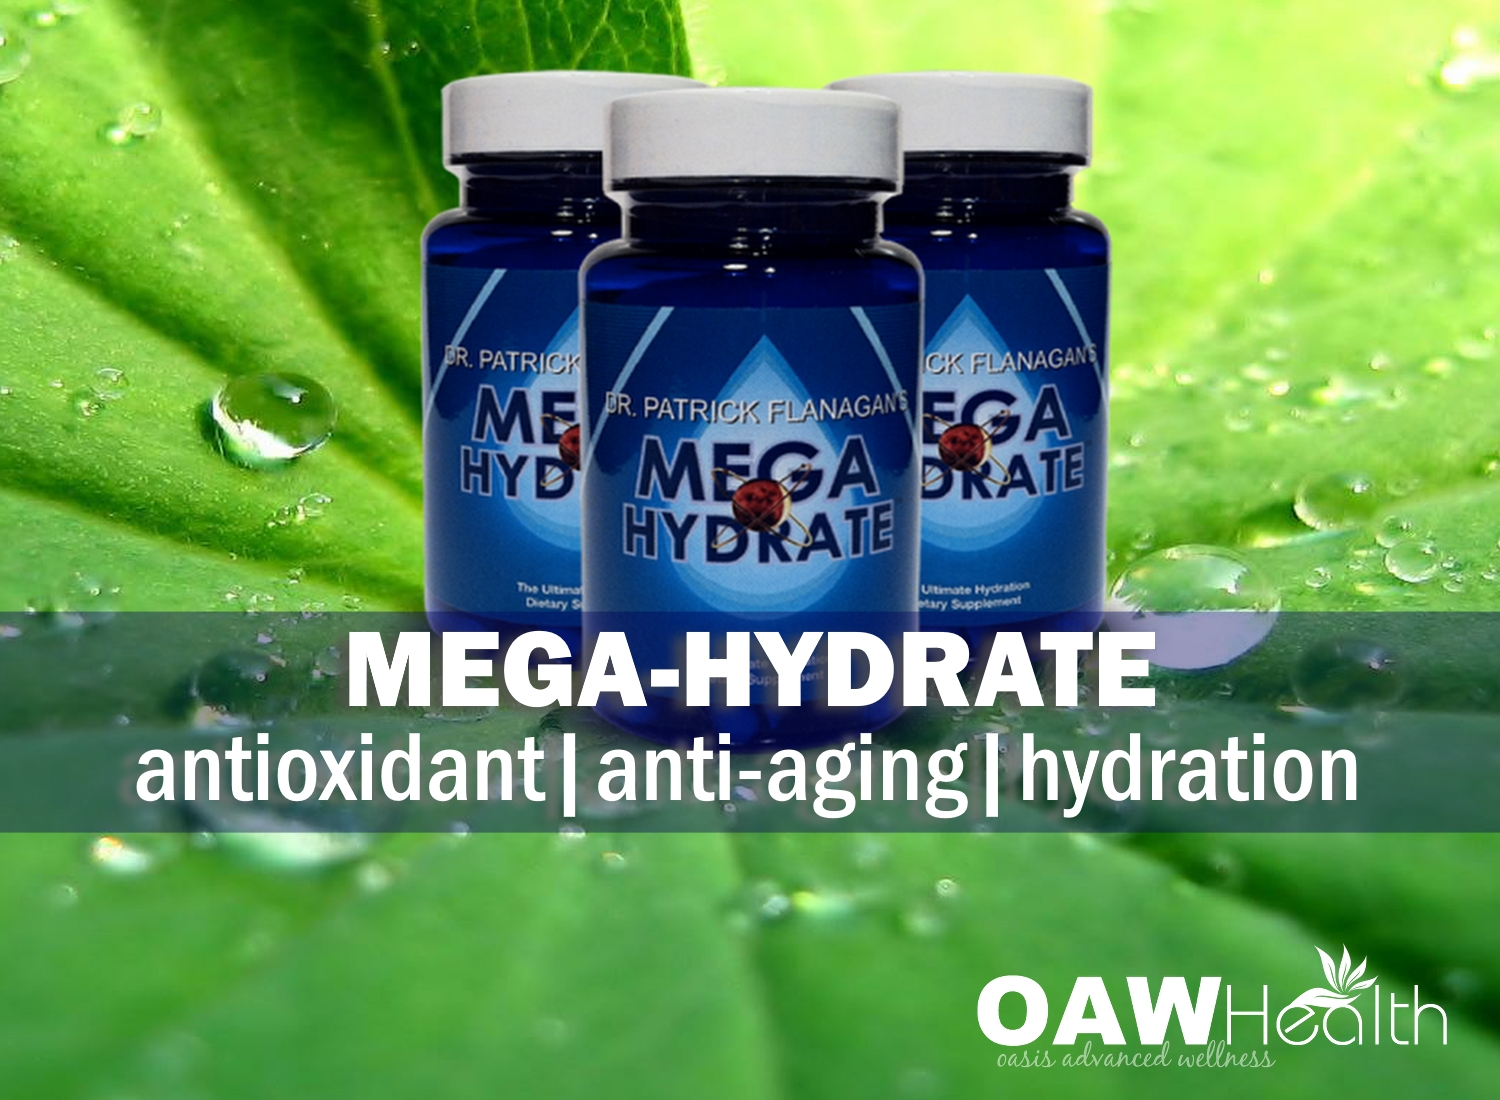 MegaHydrate – Antioxidant, Anti-Aging & Hydration Benefits